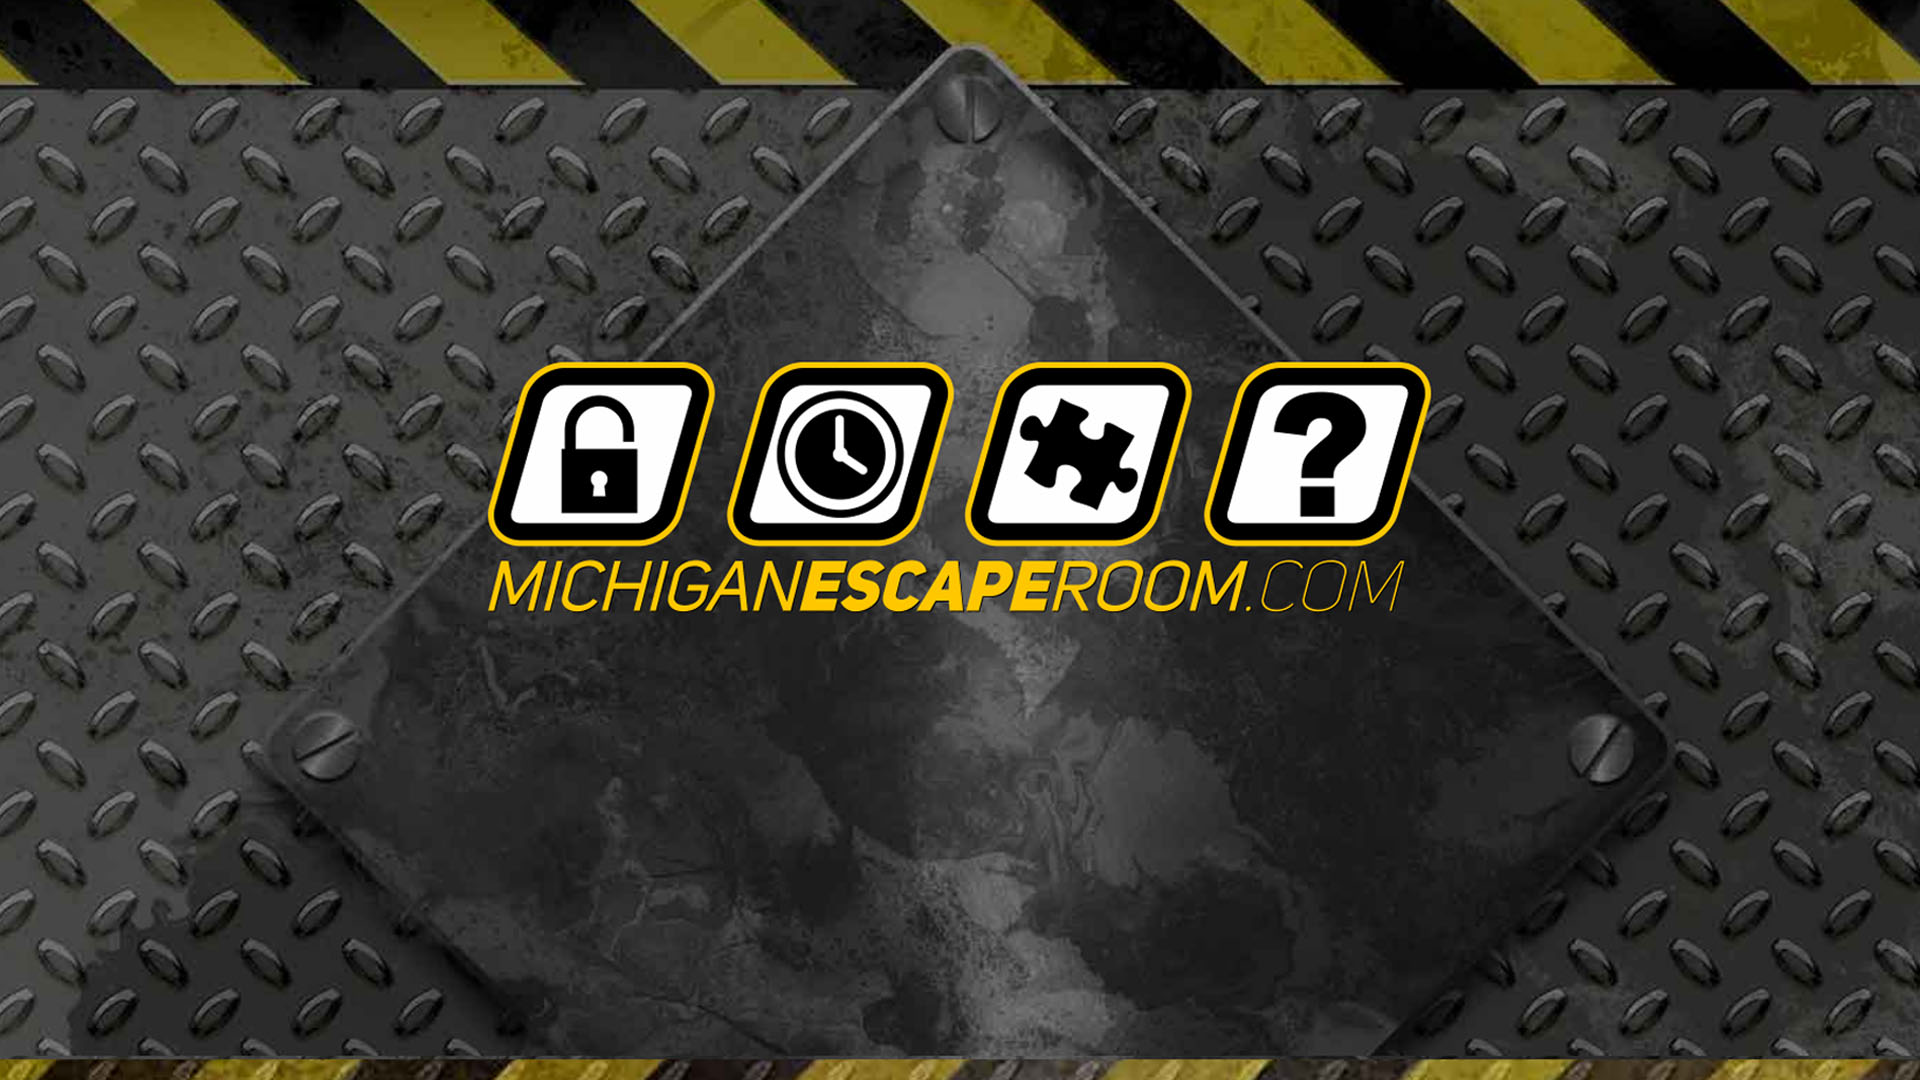 Several Job Openings for Michigan Escape Room